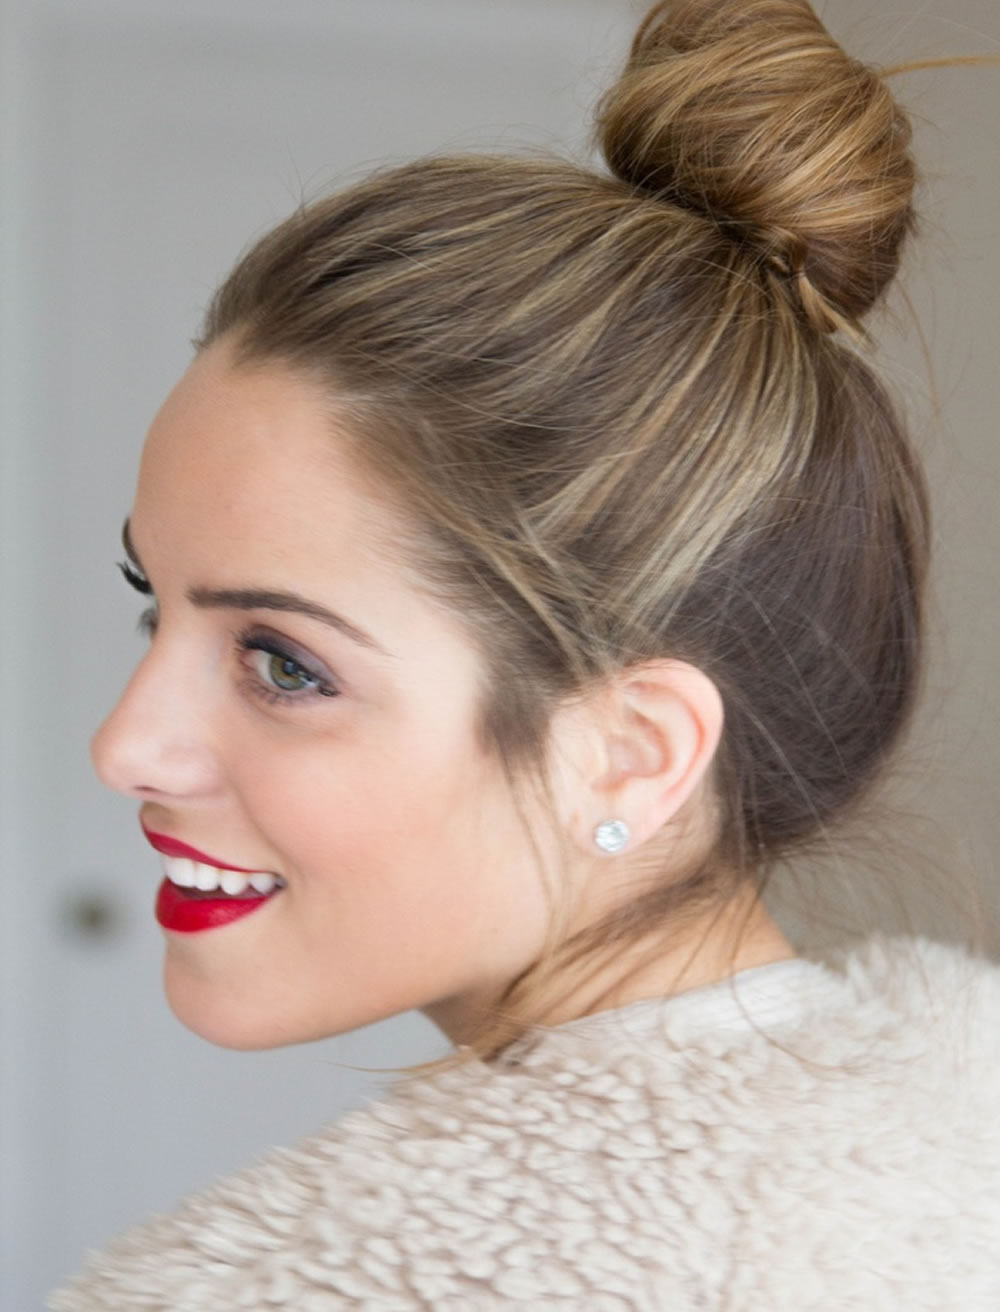 Bun hairstyle ideas 2019 and hair colors